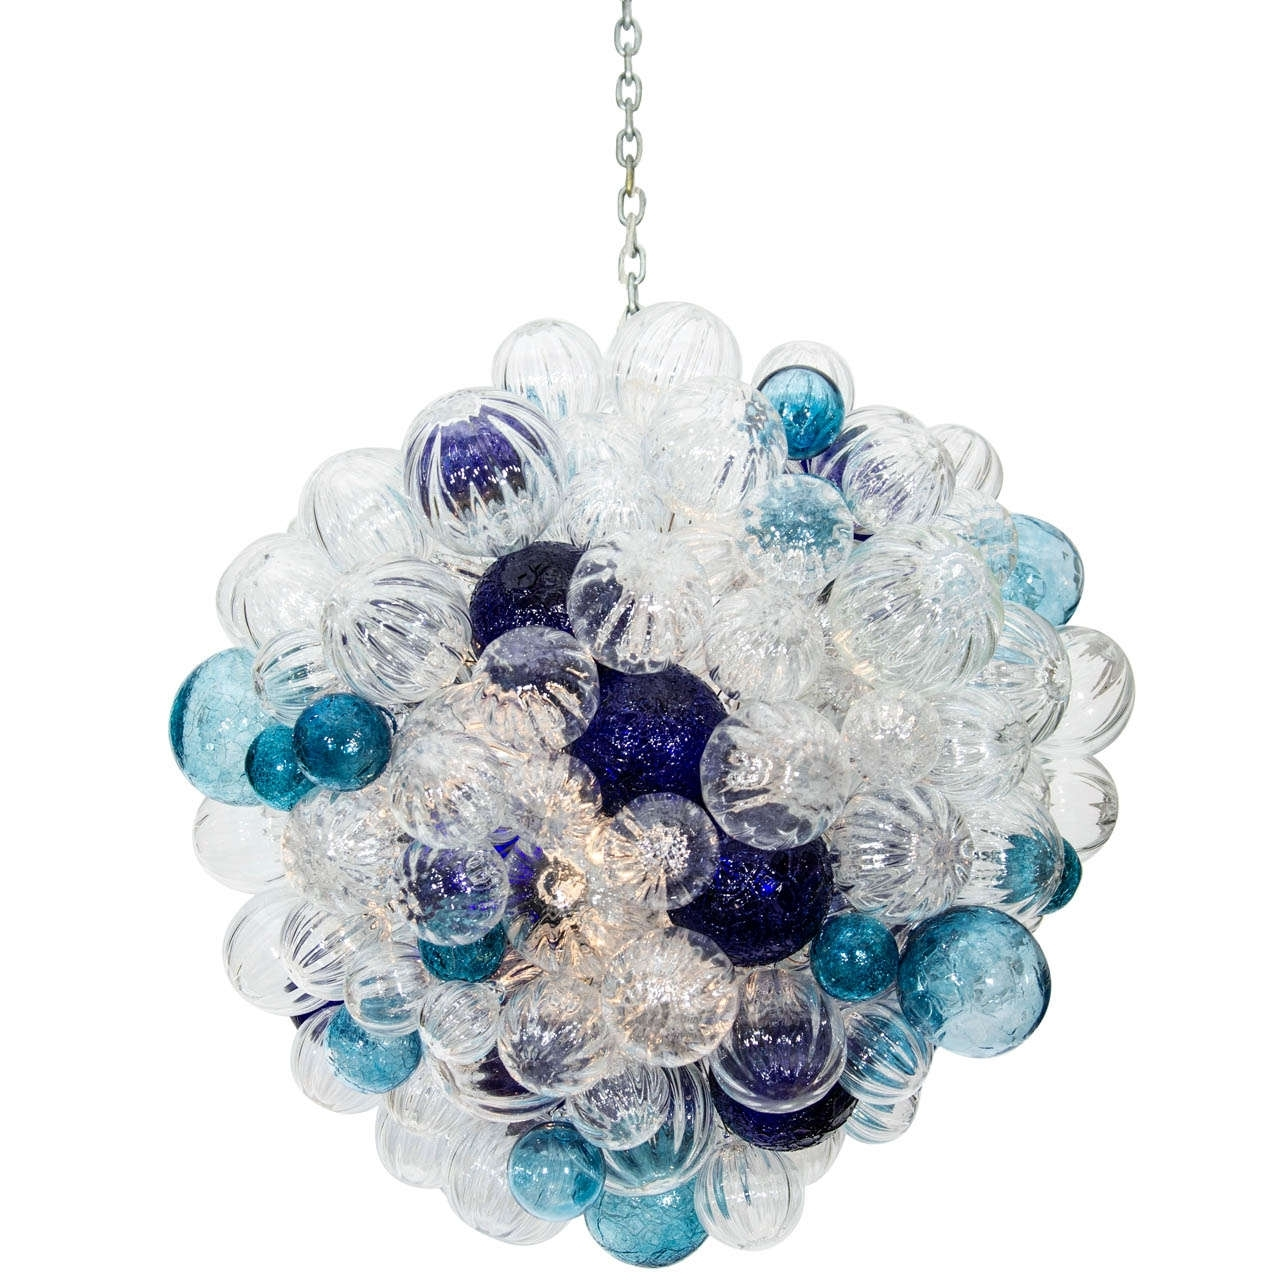 Interior: Attractive Blue White Glass Bubble Chandelier With Chain Throughout Most Recently Released Turquoise Bubble Chandeliers (View 15 of 15)